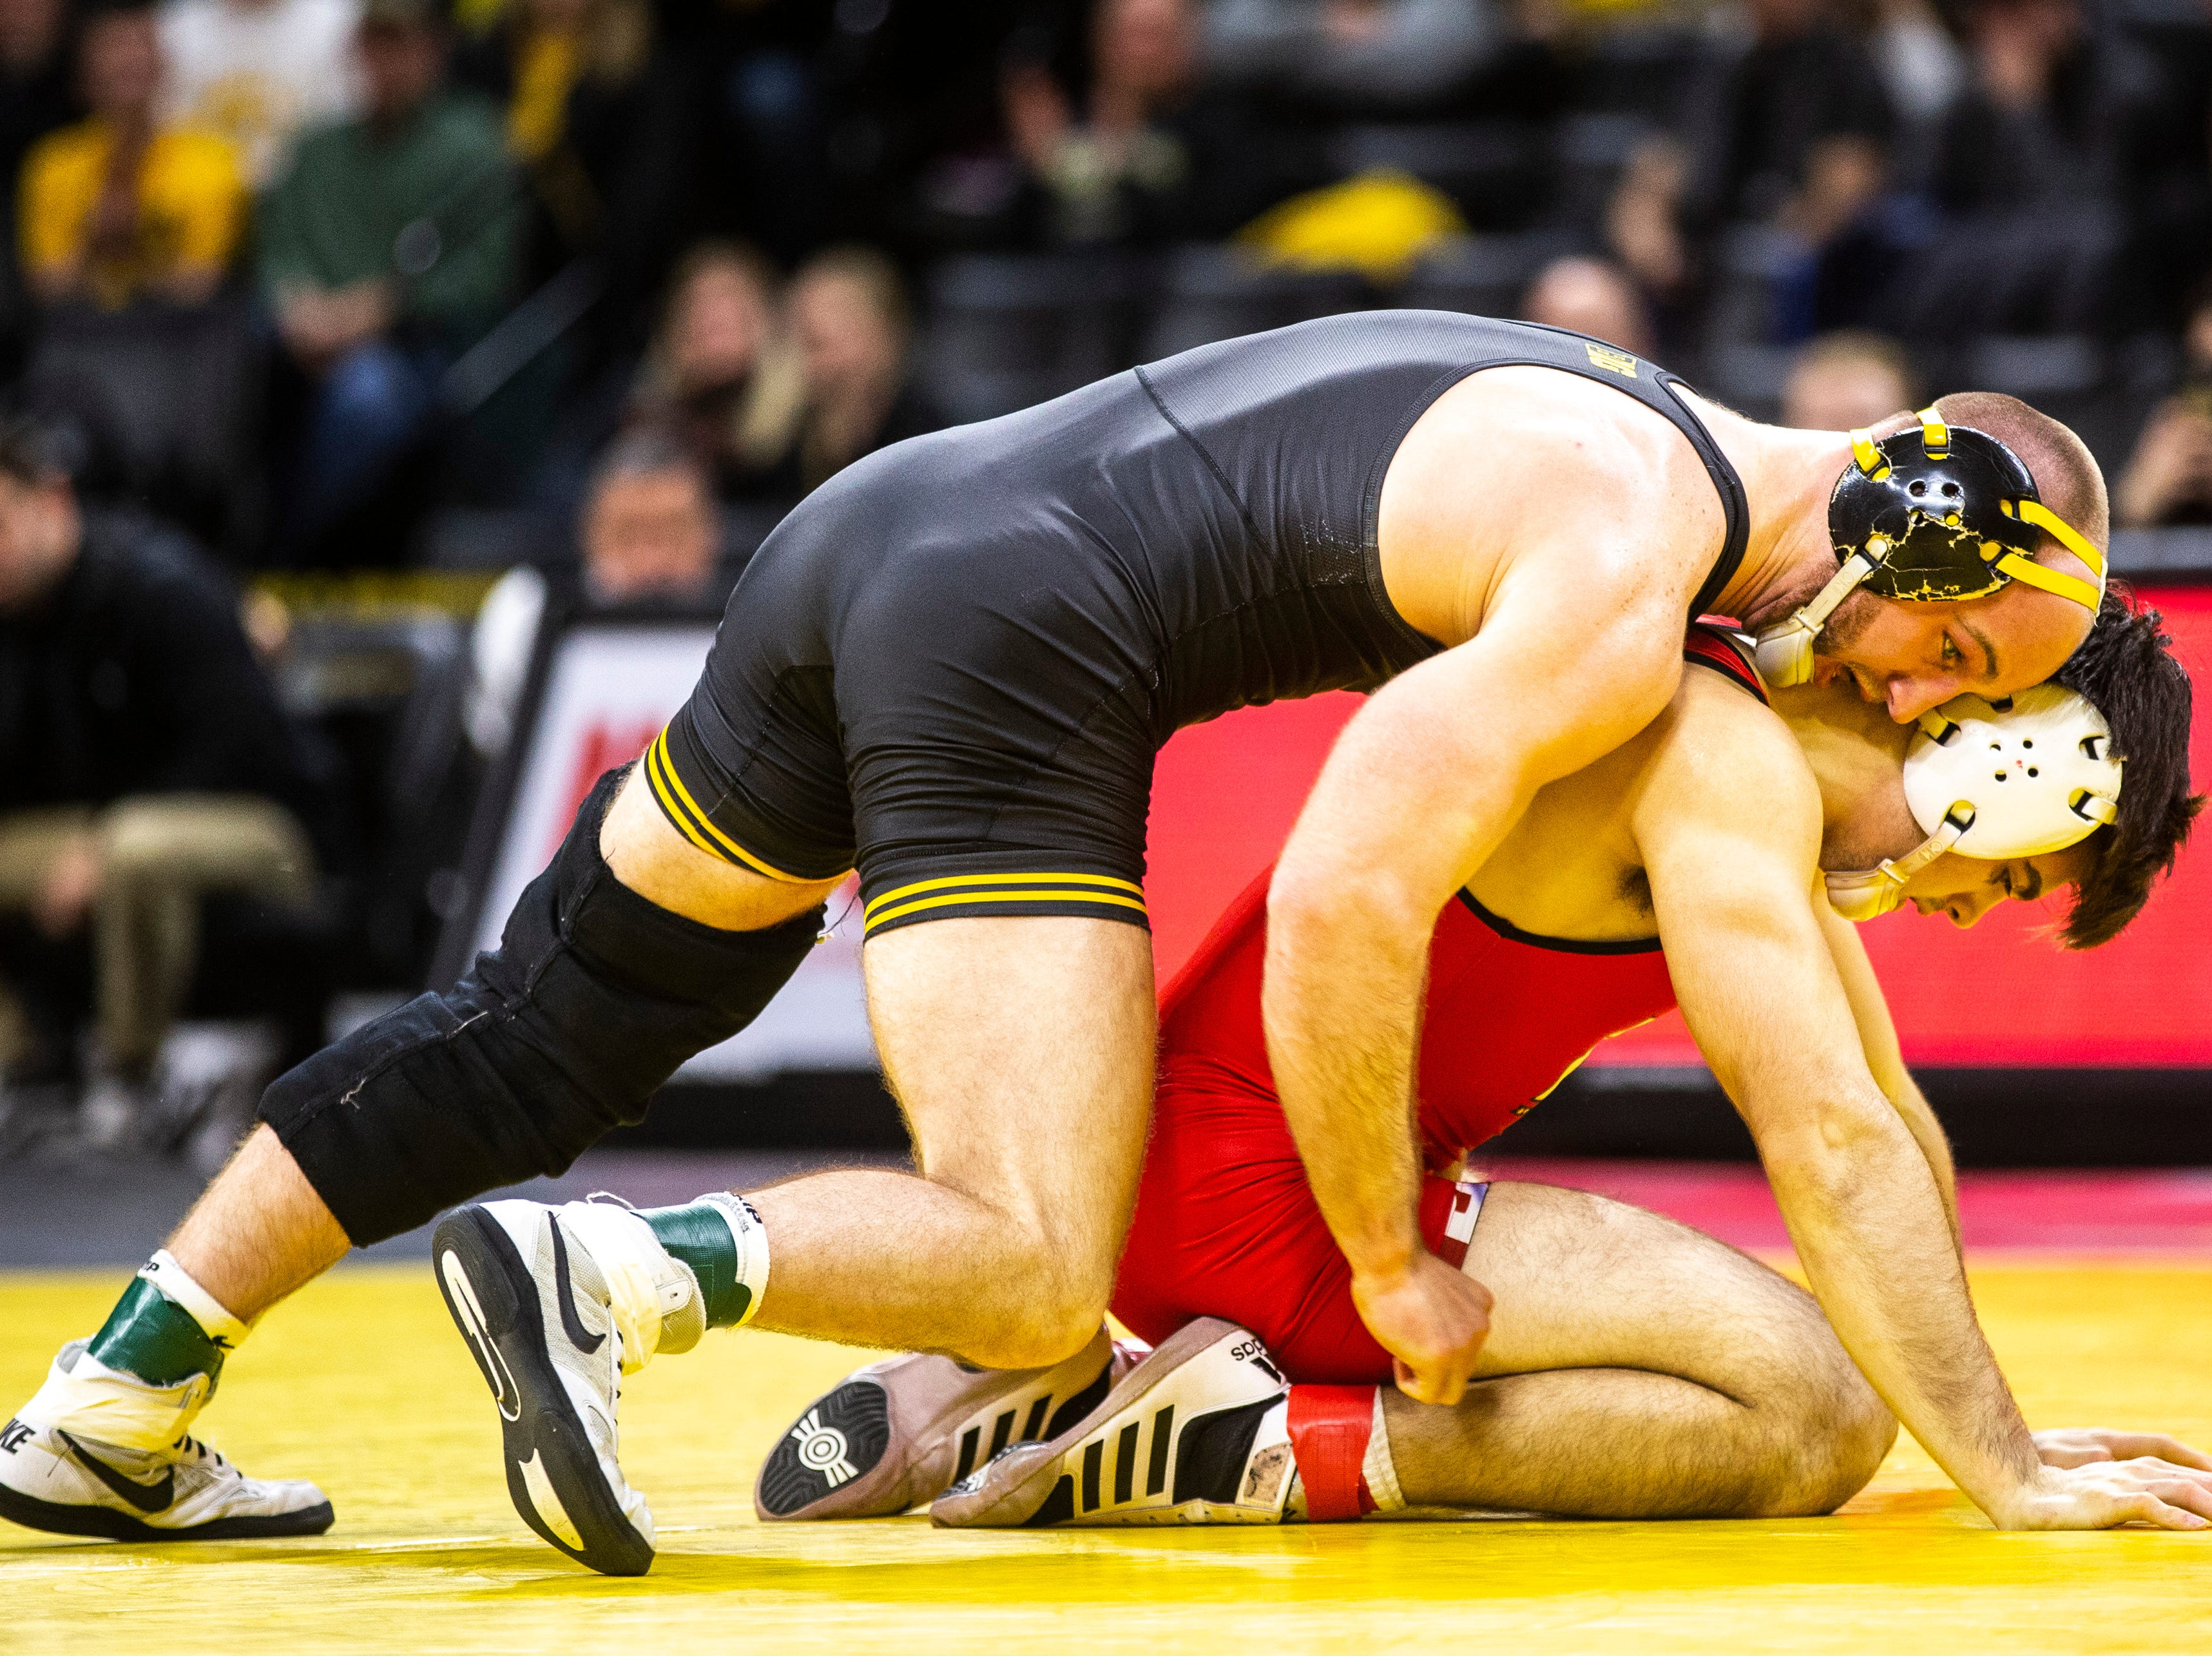 Iowa's Alex Marinelli, top, wrestles Maryland's Philip Spadafora at 165 during a NCAA Big Ten Conference wrestling dual on Friday, Feb. 8, 2019 at Carver-Hawkeye Arena in Iowa City, Iowa.